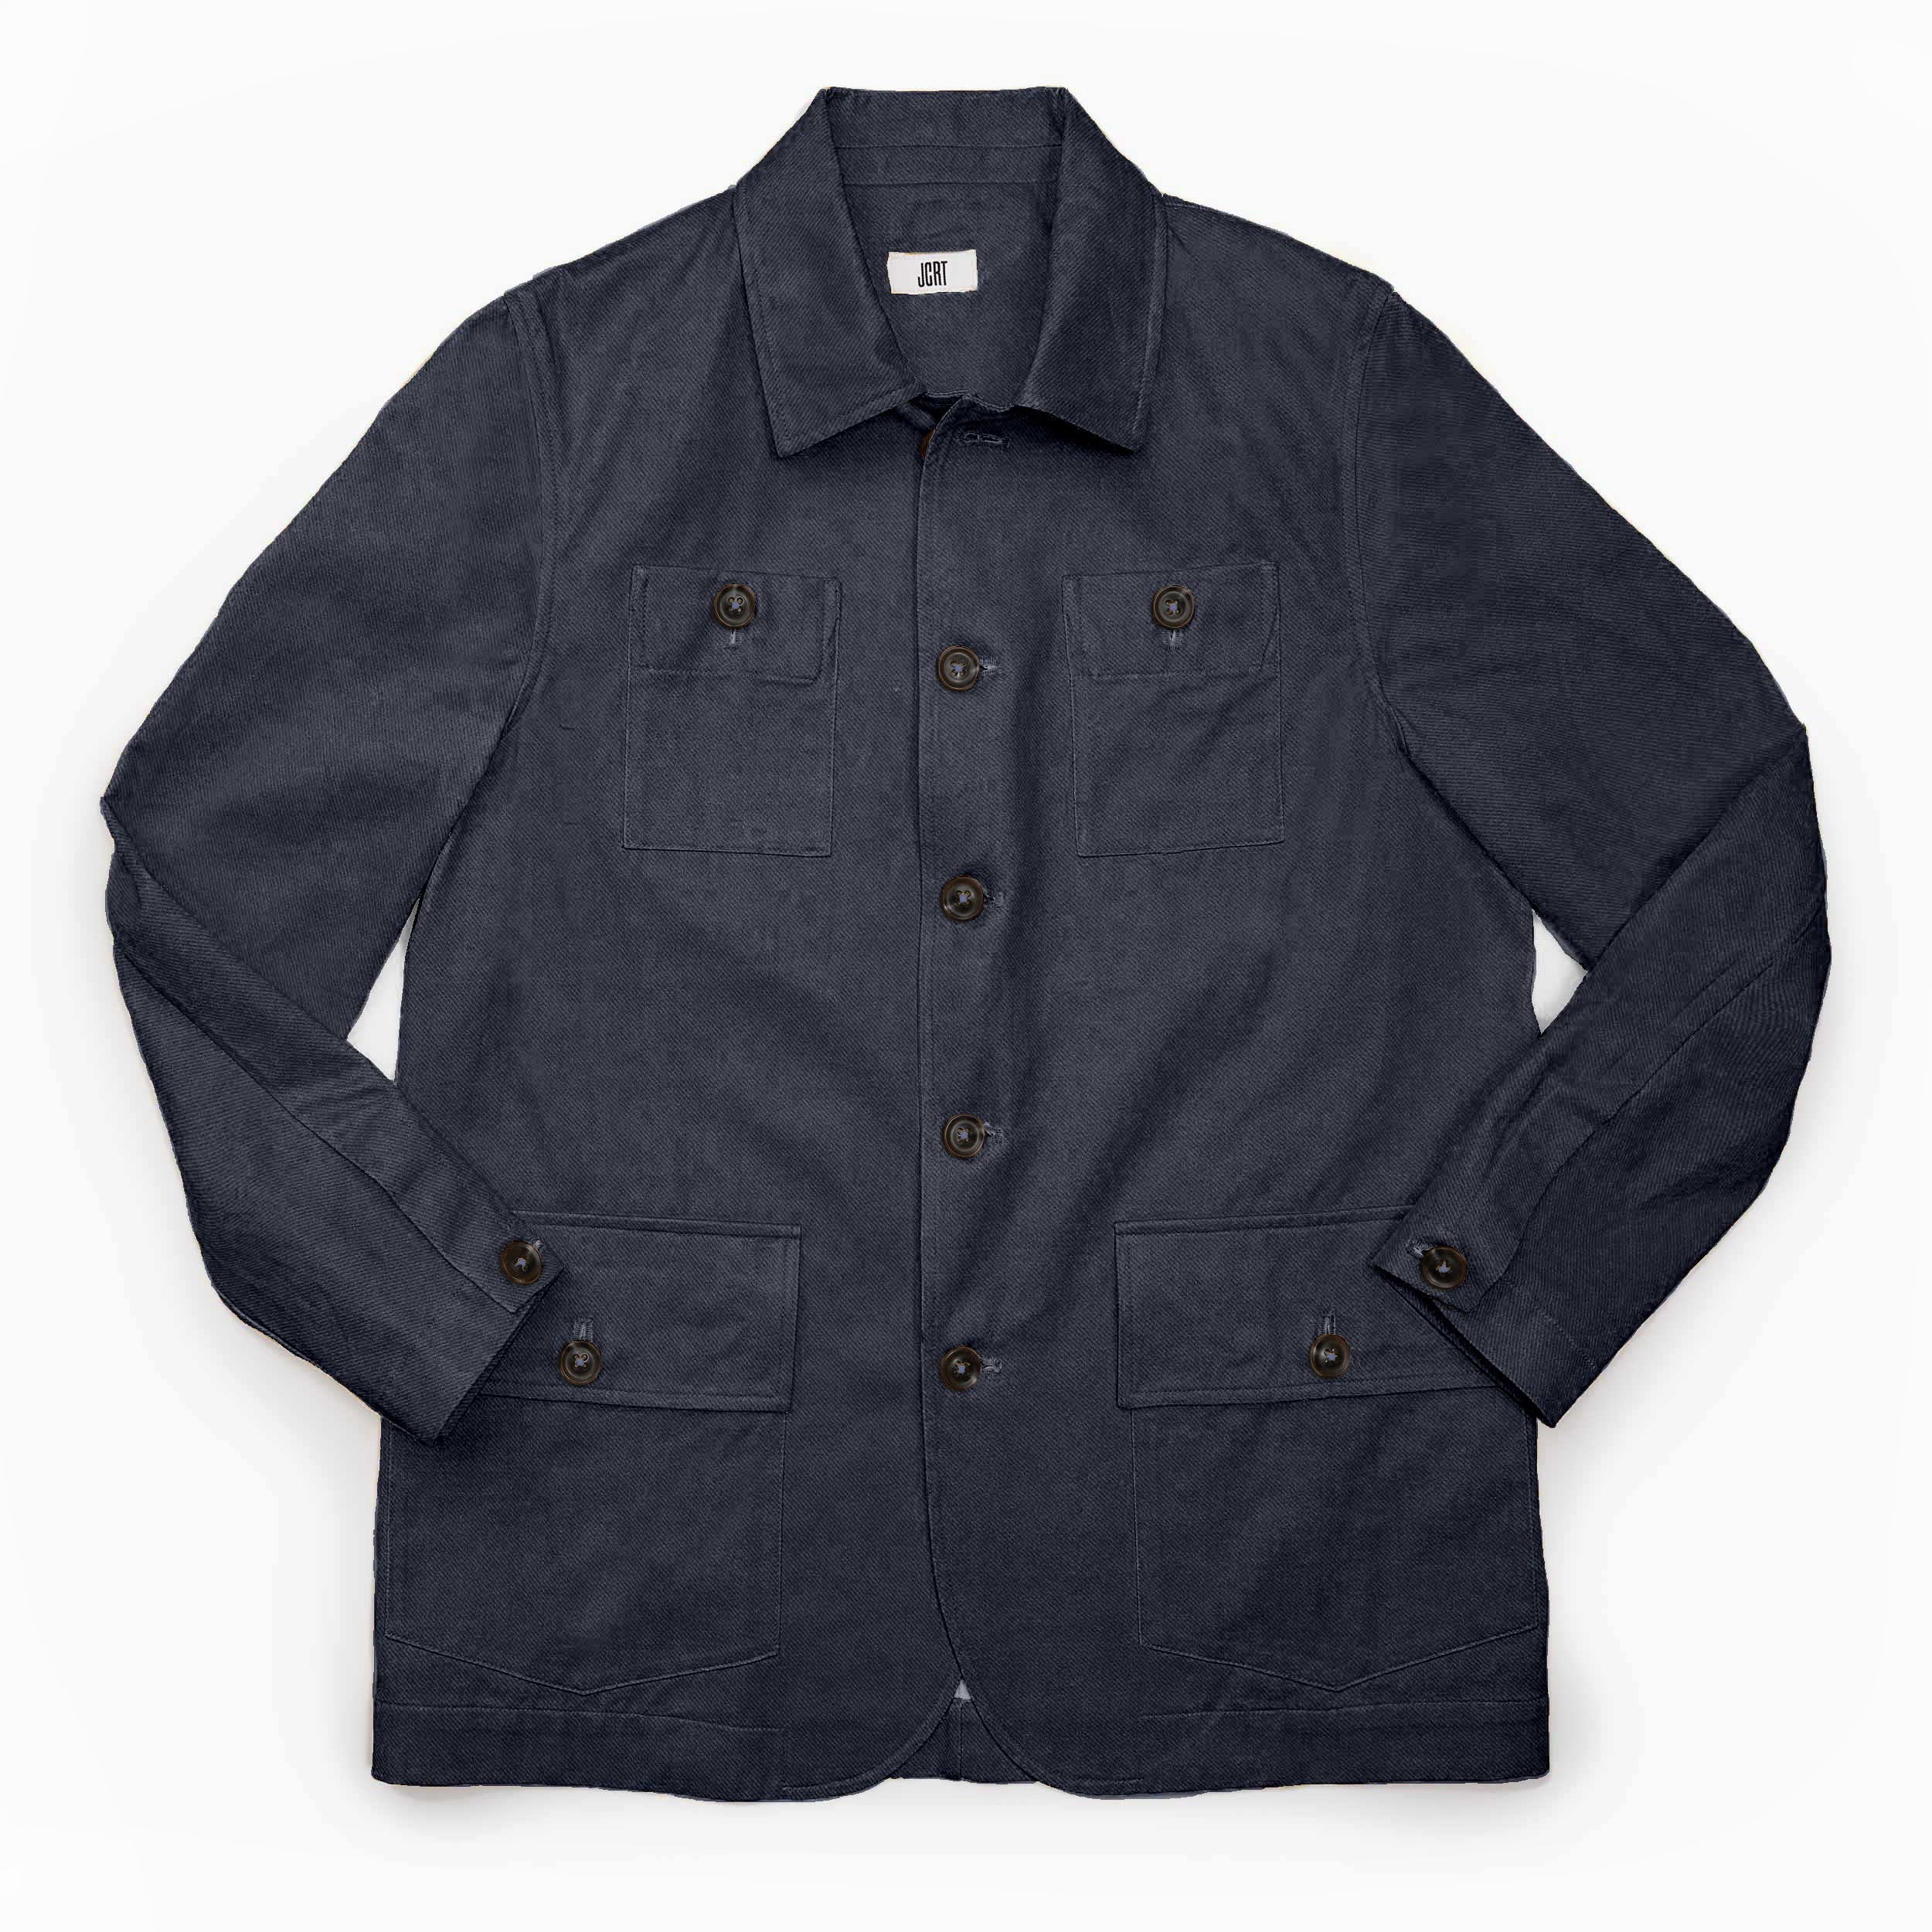 The Washed Denim Twill Country Jacket